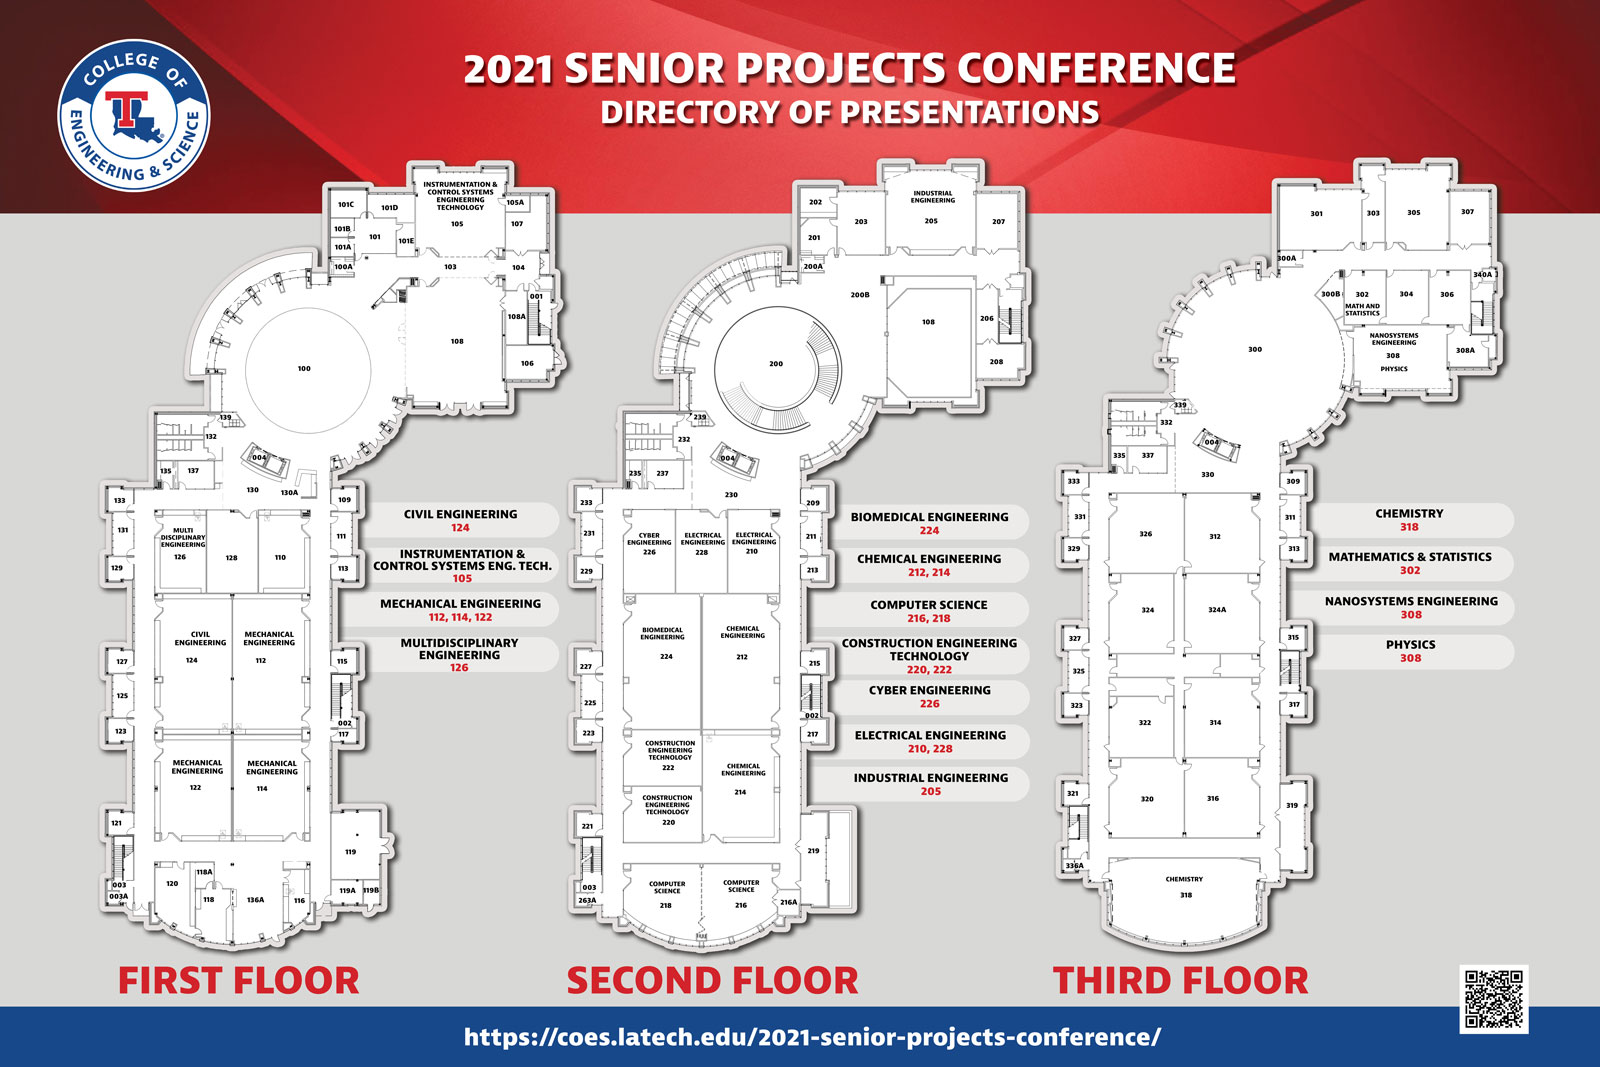 2021 Senior Projects Conference Directory of Presentations. First Floor: Civil Engineering 124, Instrumentation and Control Systems Engineering Technology 105, Mechanical Engineering 112, 114, 122, Multidisciplinary Engineering 126; Second Floor: Biomedical Engineering 224, Chemical Engineering 212, 214, Computer Science 216, 218, Construction Engineering Technology 220, 222, Cyber Engineering 226, Electrical Engineering 210, 228, Industrial Engineering 205; Third Floor: Chemistry 318, Mathematics & Statistics 302, Nanosystems Engineering 308, Physics 308.